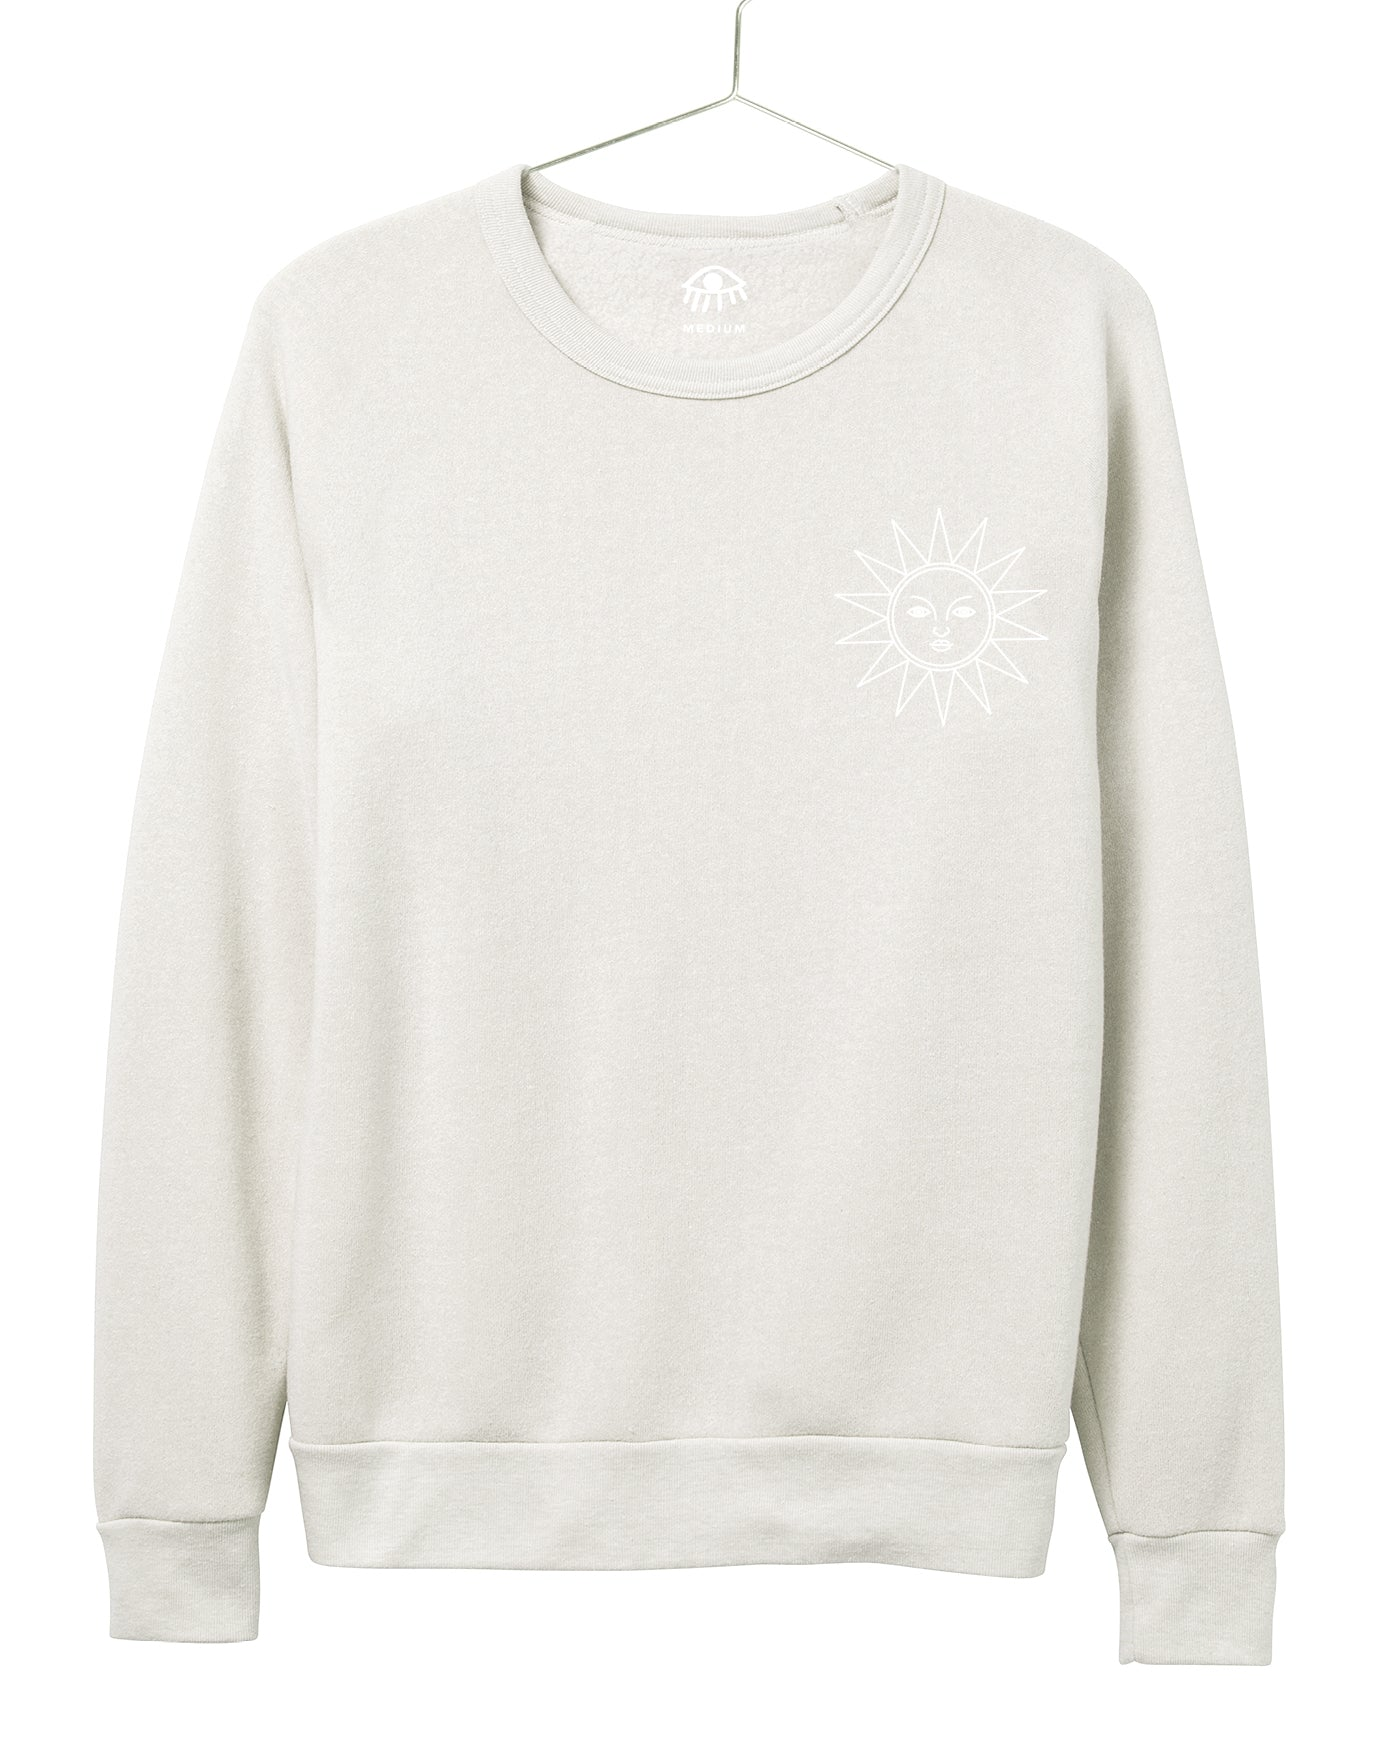 The Sun Women's Crewneck